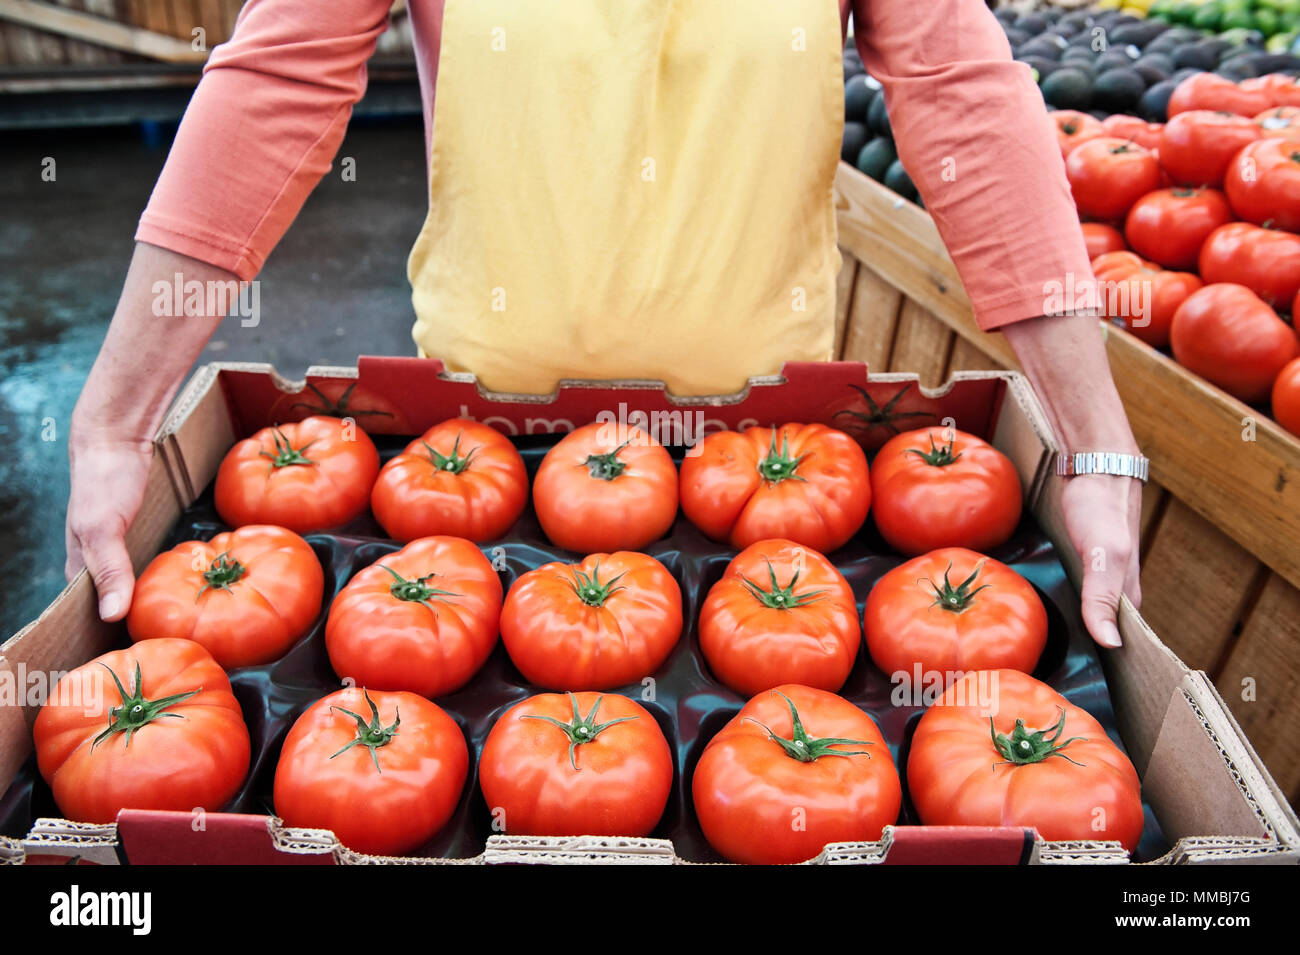 High angle close up of person holding large tray of fresh tomatoes at a fruit and vegetable market. - Stock Image